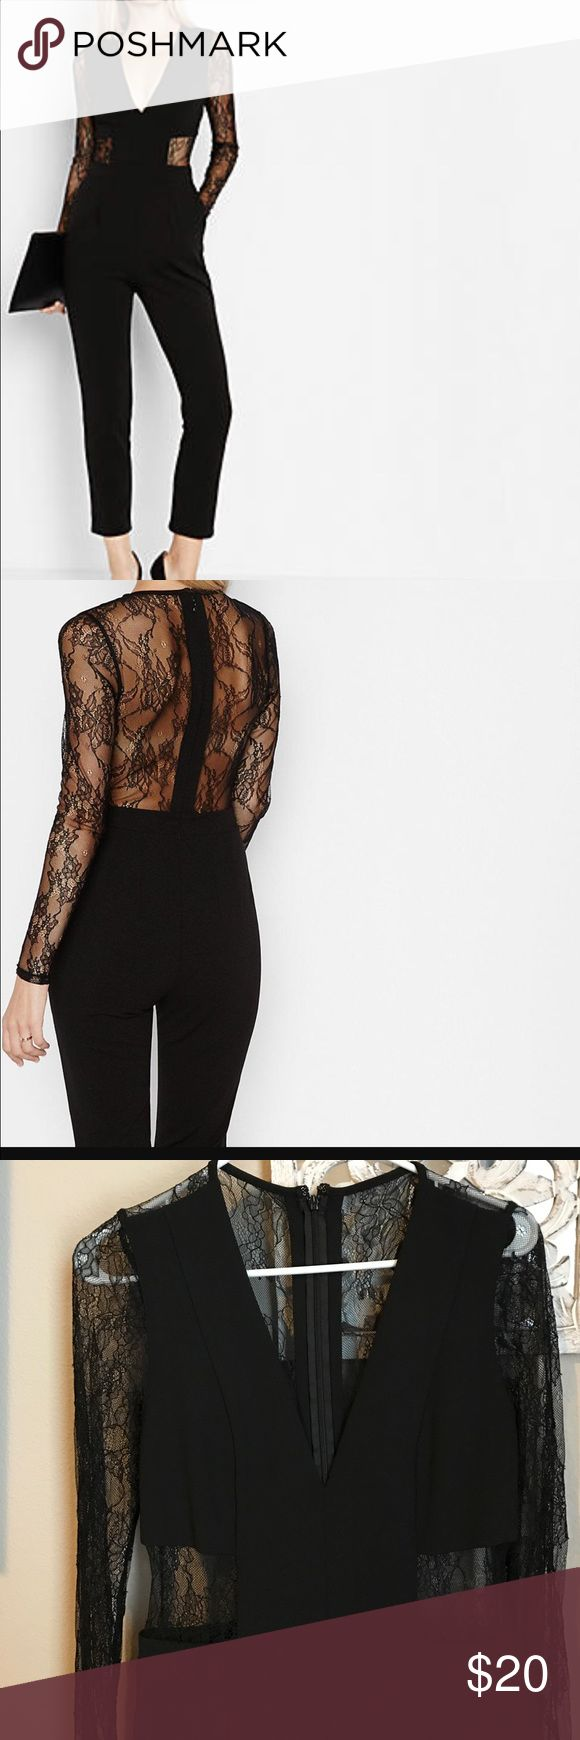 Express jumpsuit Black lace back jumpsuit with sleeve, worn once! Practically new! Express Other